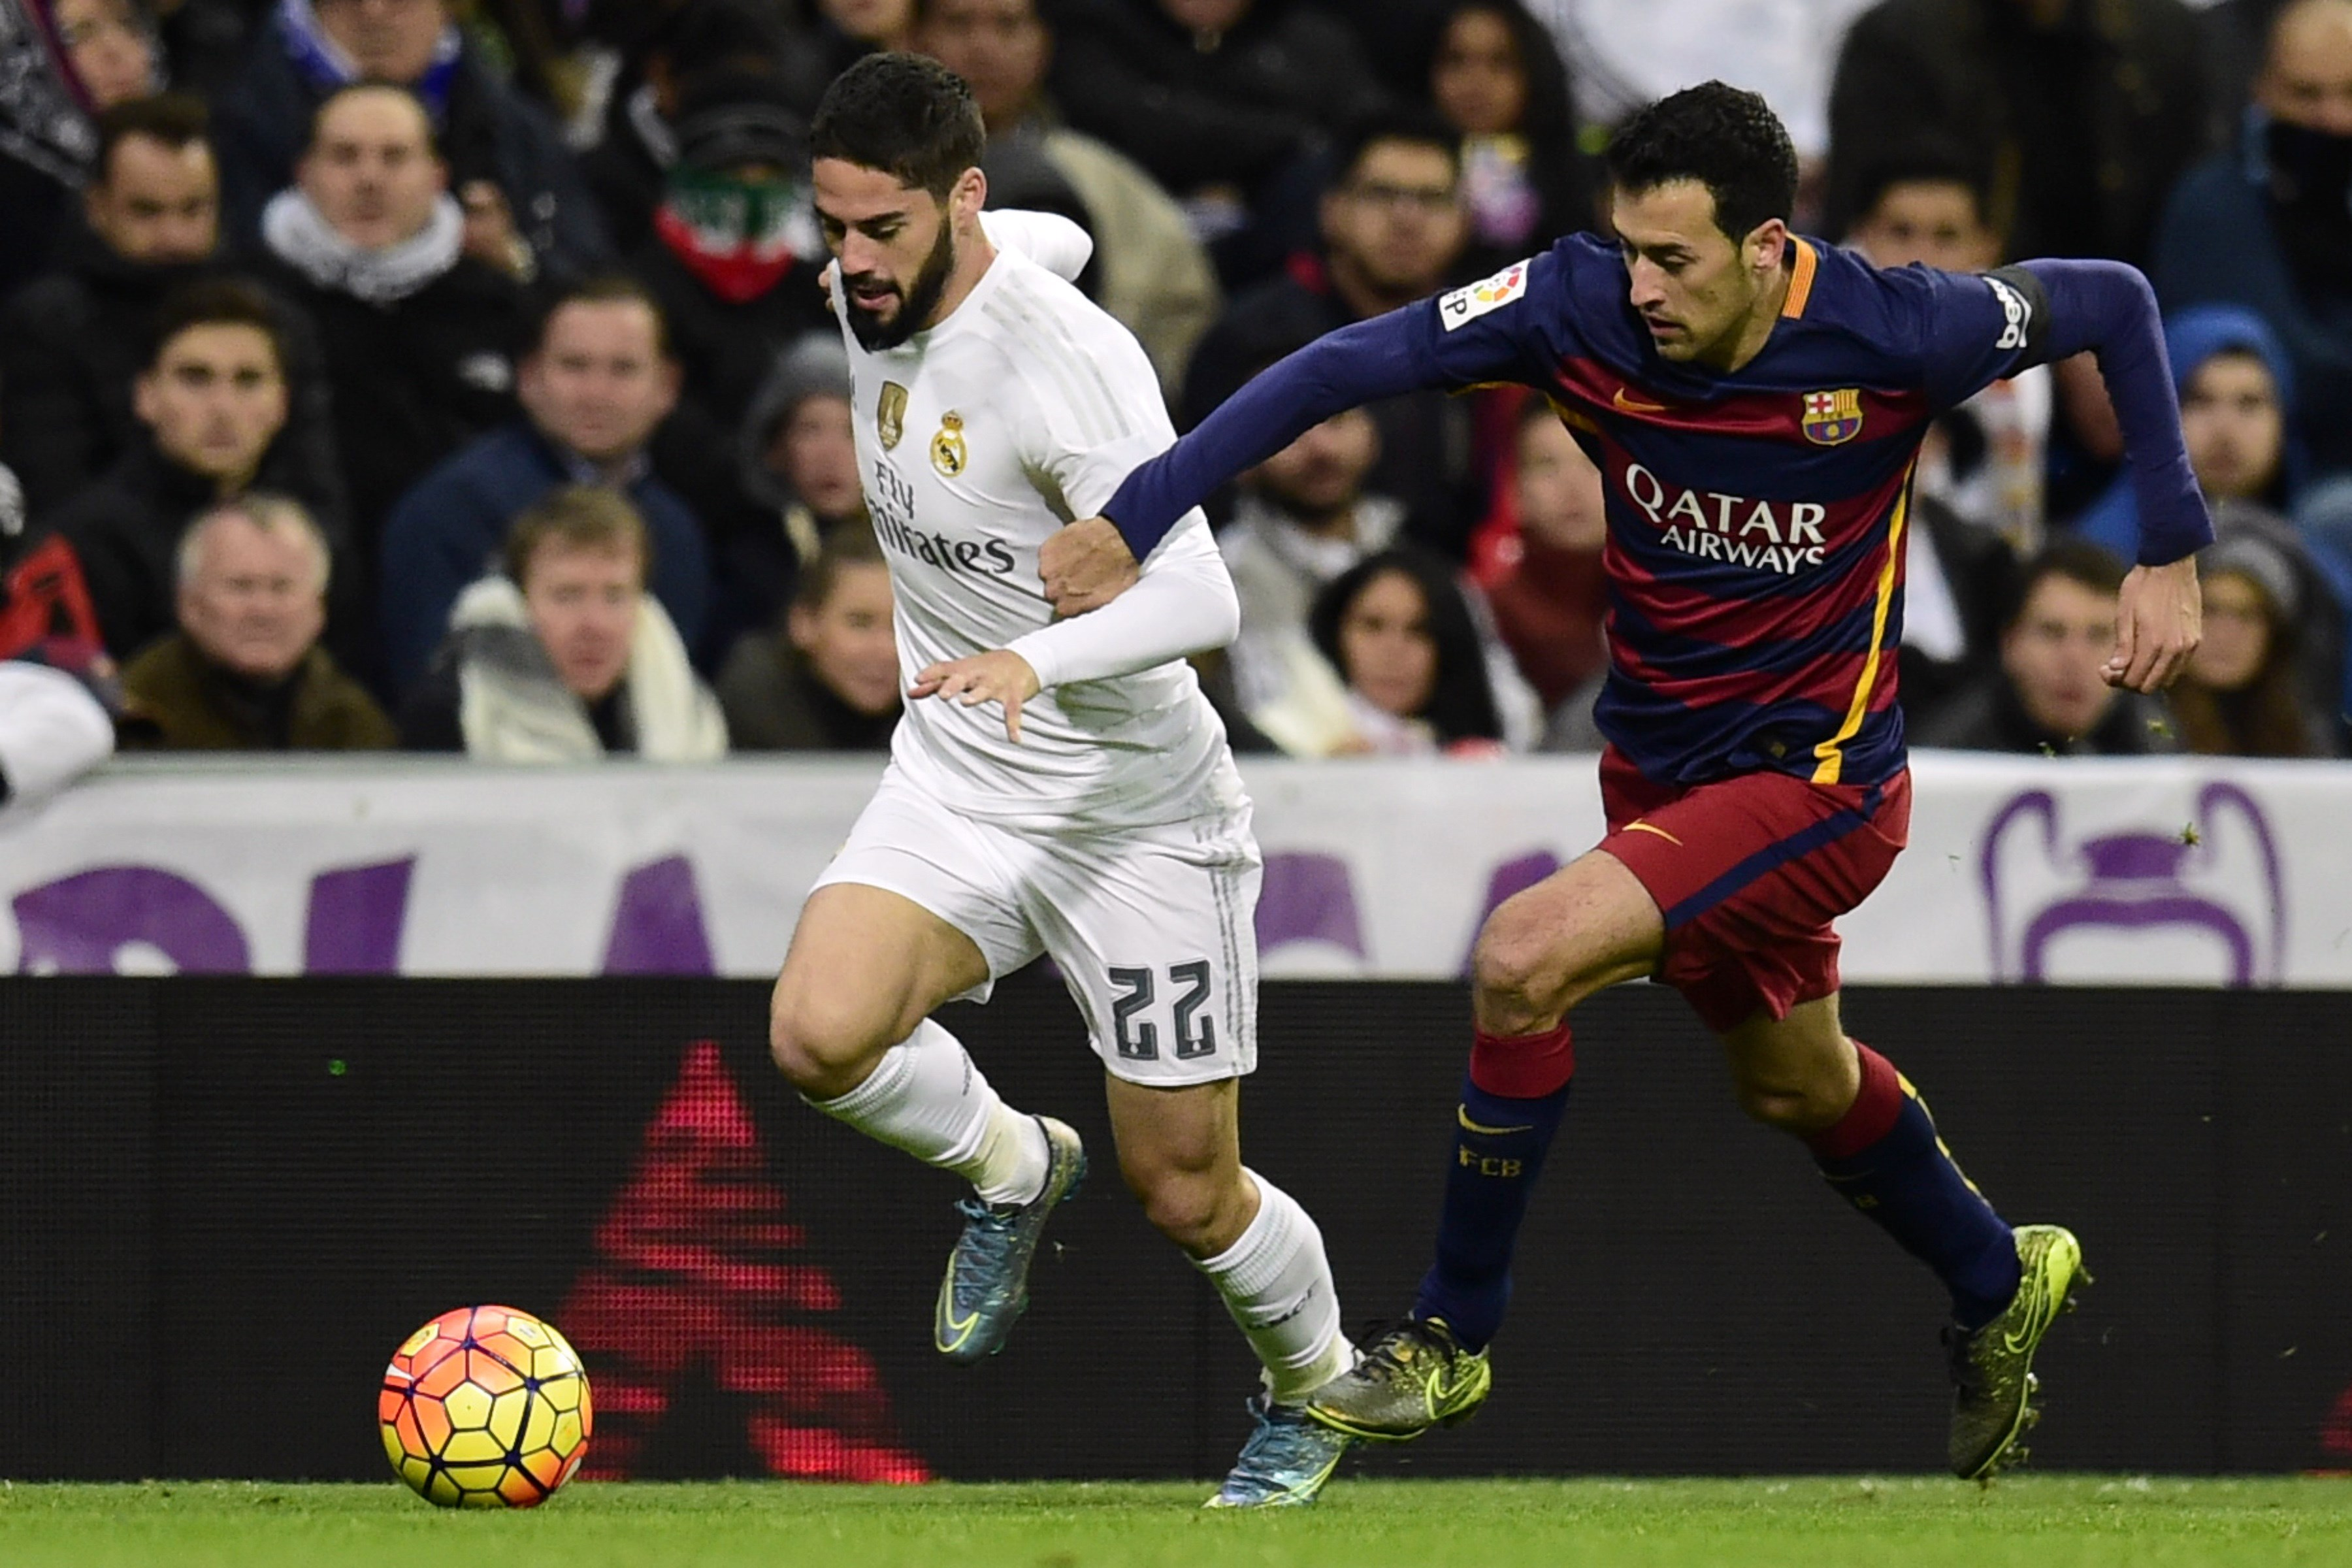 """Real Madrid's midfielder Isco (L) vies with Barcelona's midfielder Sergio Busquets during the Spanish league """"Clasico"""" football match Real Madrid CF vs FC Barcelona at the Santiago Bernabeu stadium in Madrid on November 21, 2015. AFP PHOTO/ JAVIER SORIANO (Photo credit should read JAVIER SORIANO/AFP/Getty Images)"""